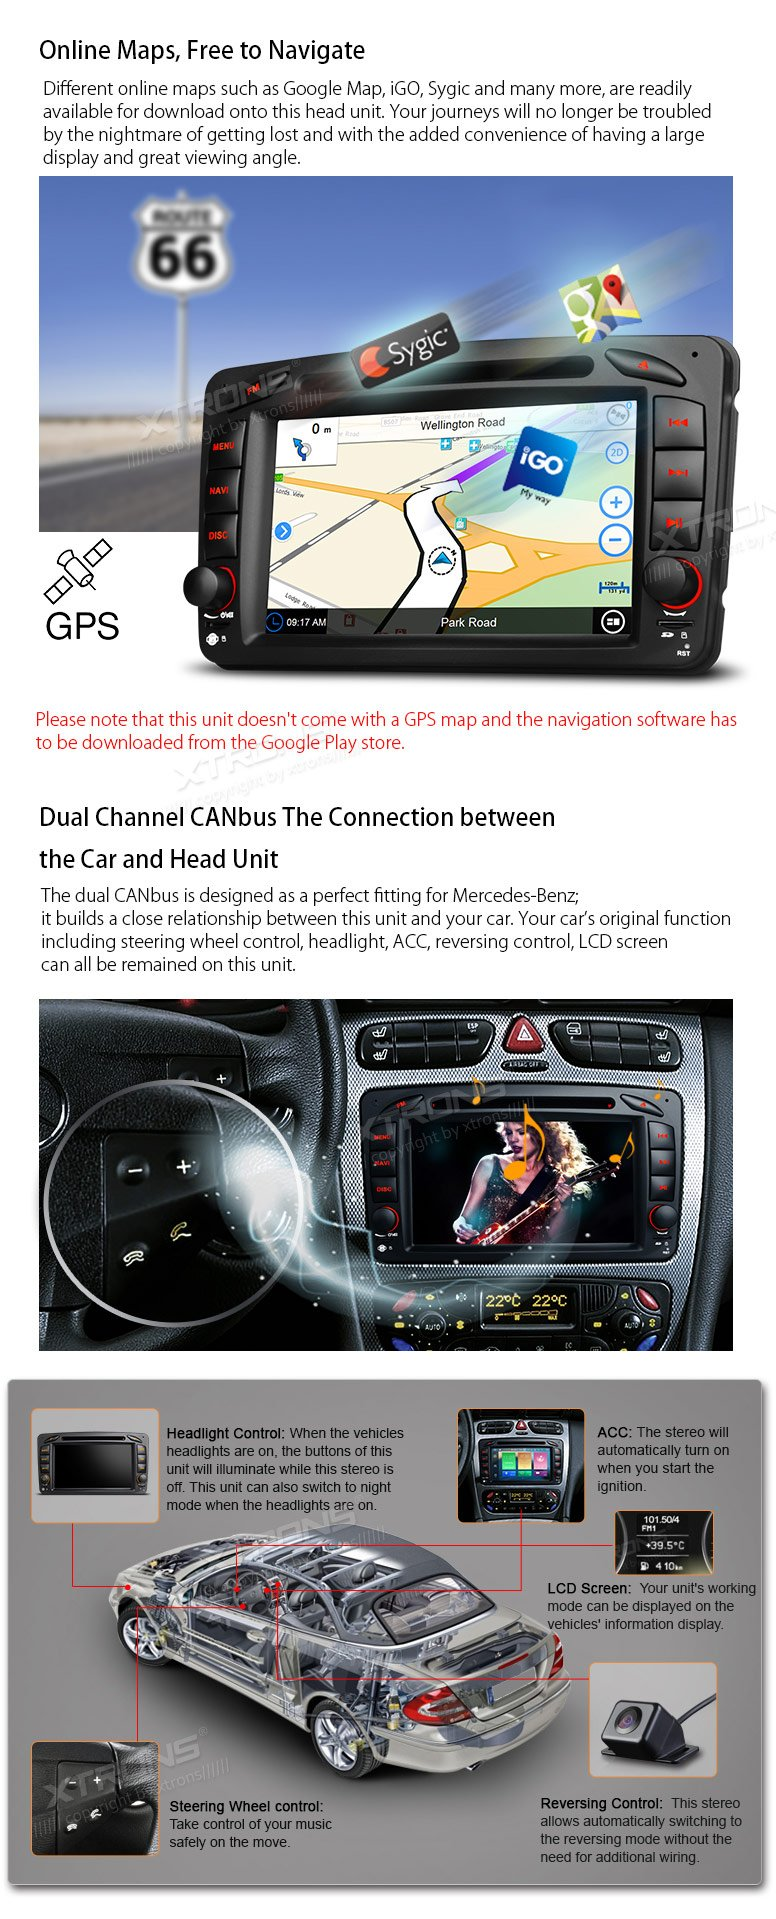 XTRONS Android 6.0 Octa-Core 64Bit 7 Inch Capacitive Touch Screen Car Stereo Radio DVD Player GPS CANbus Screen Mirroring Function OBD2 Tire Pressure Monitoring for Mercedes Benz W203 W209 W463 by XTRONS (Image #7)